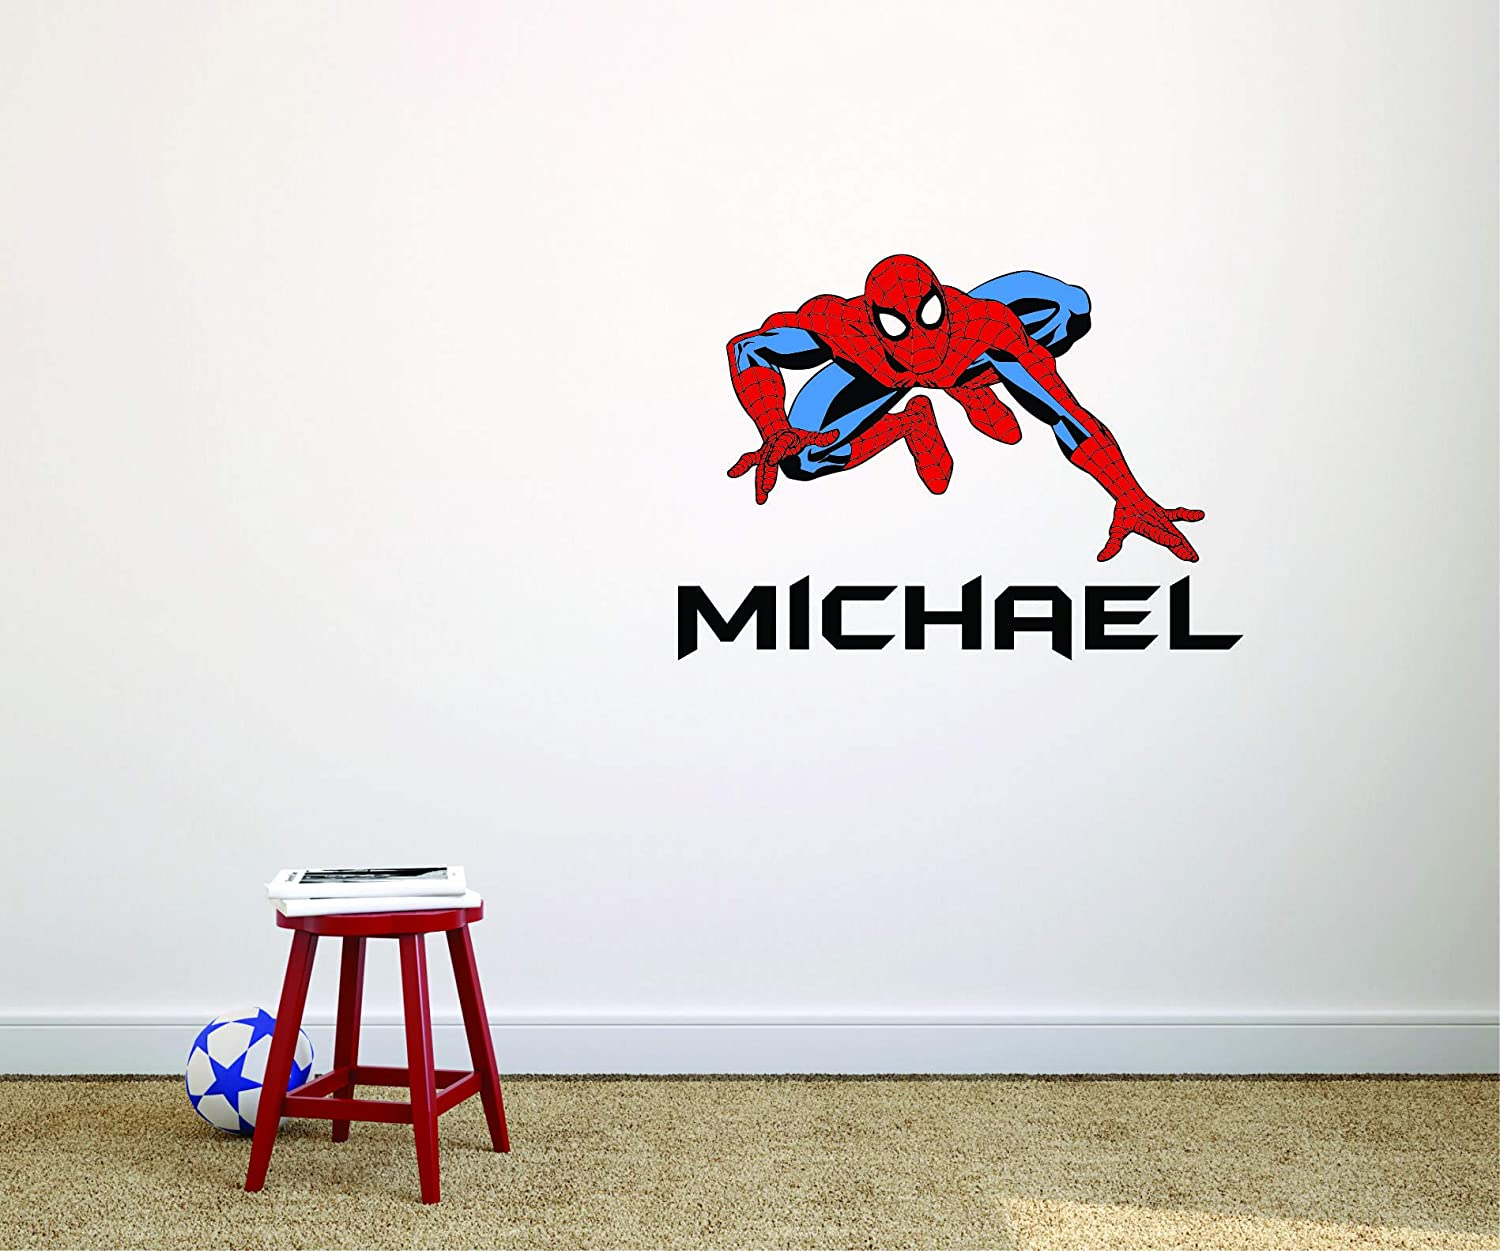 Spider Man Design Boys Personalized Name Custom Name Wall Decals for Bedrooms//Spiderman Kids Childrens Cartoon Cartoons Design Decoration for Wall Walls Fun Colorful Art Stickers Size 13x16 inches